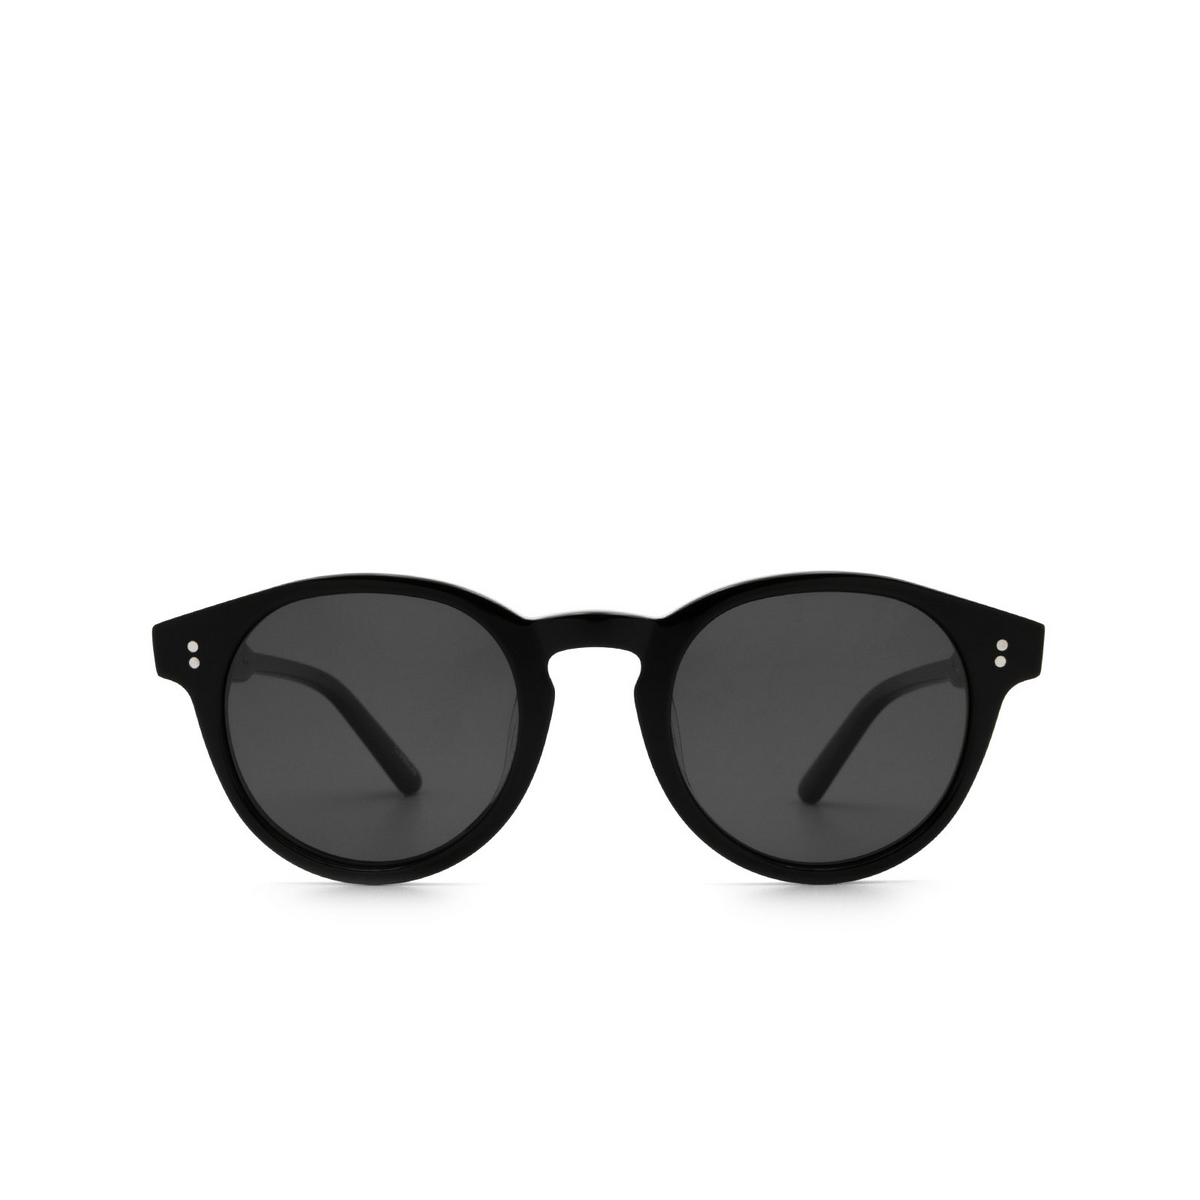 Chimi® Round Sunglasses: 03 color Black - front view.